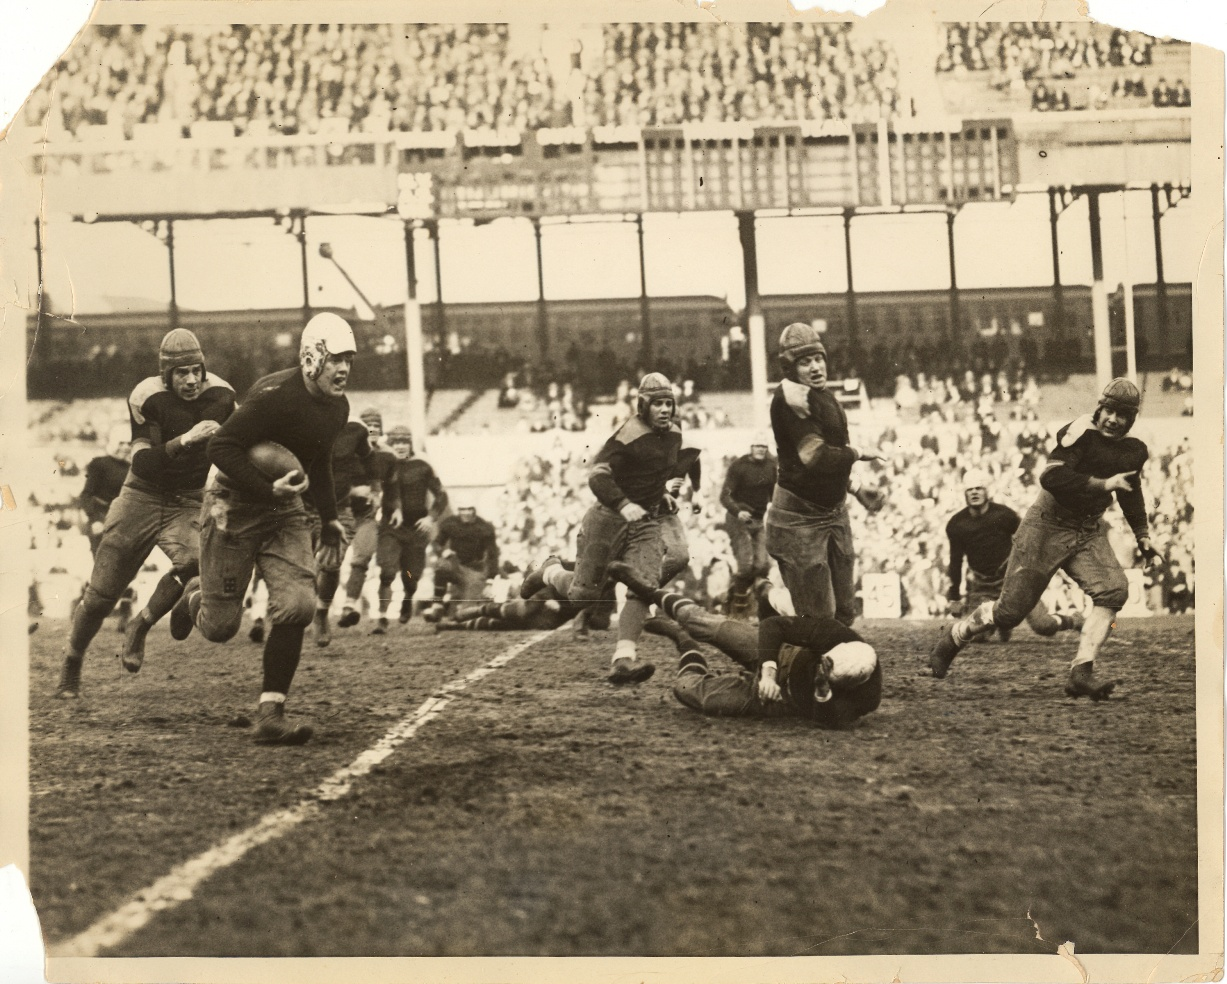 Bruce Caldwell (with ball), New York Giants (December 2, 1928)